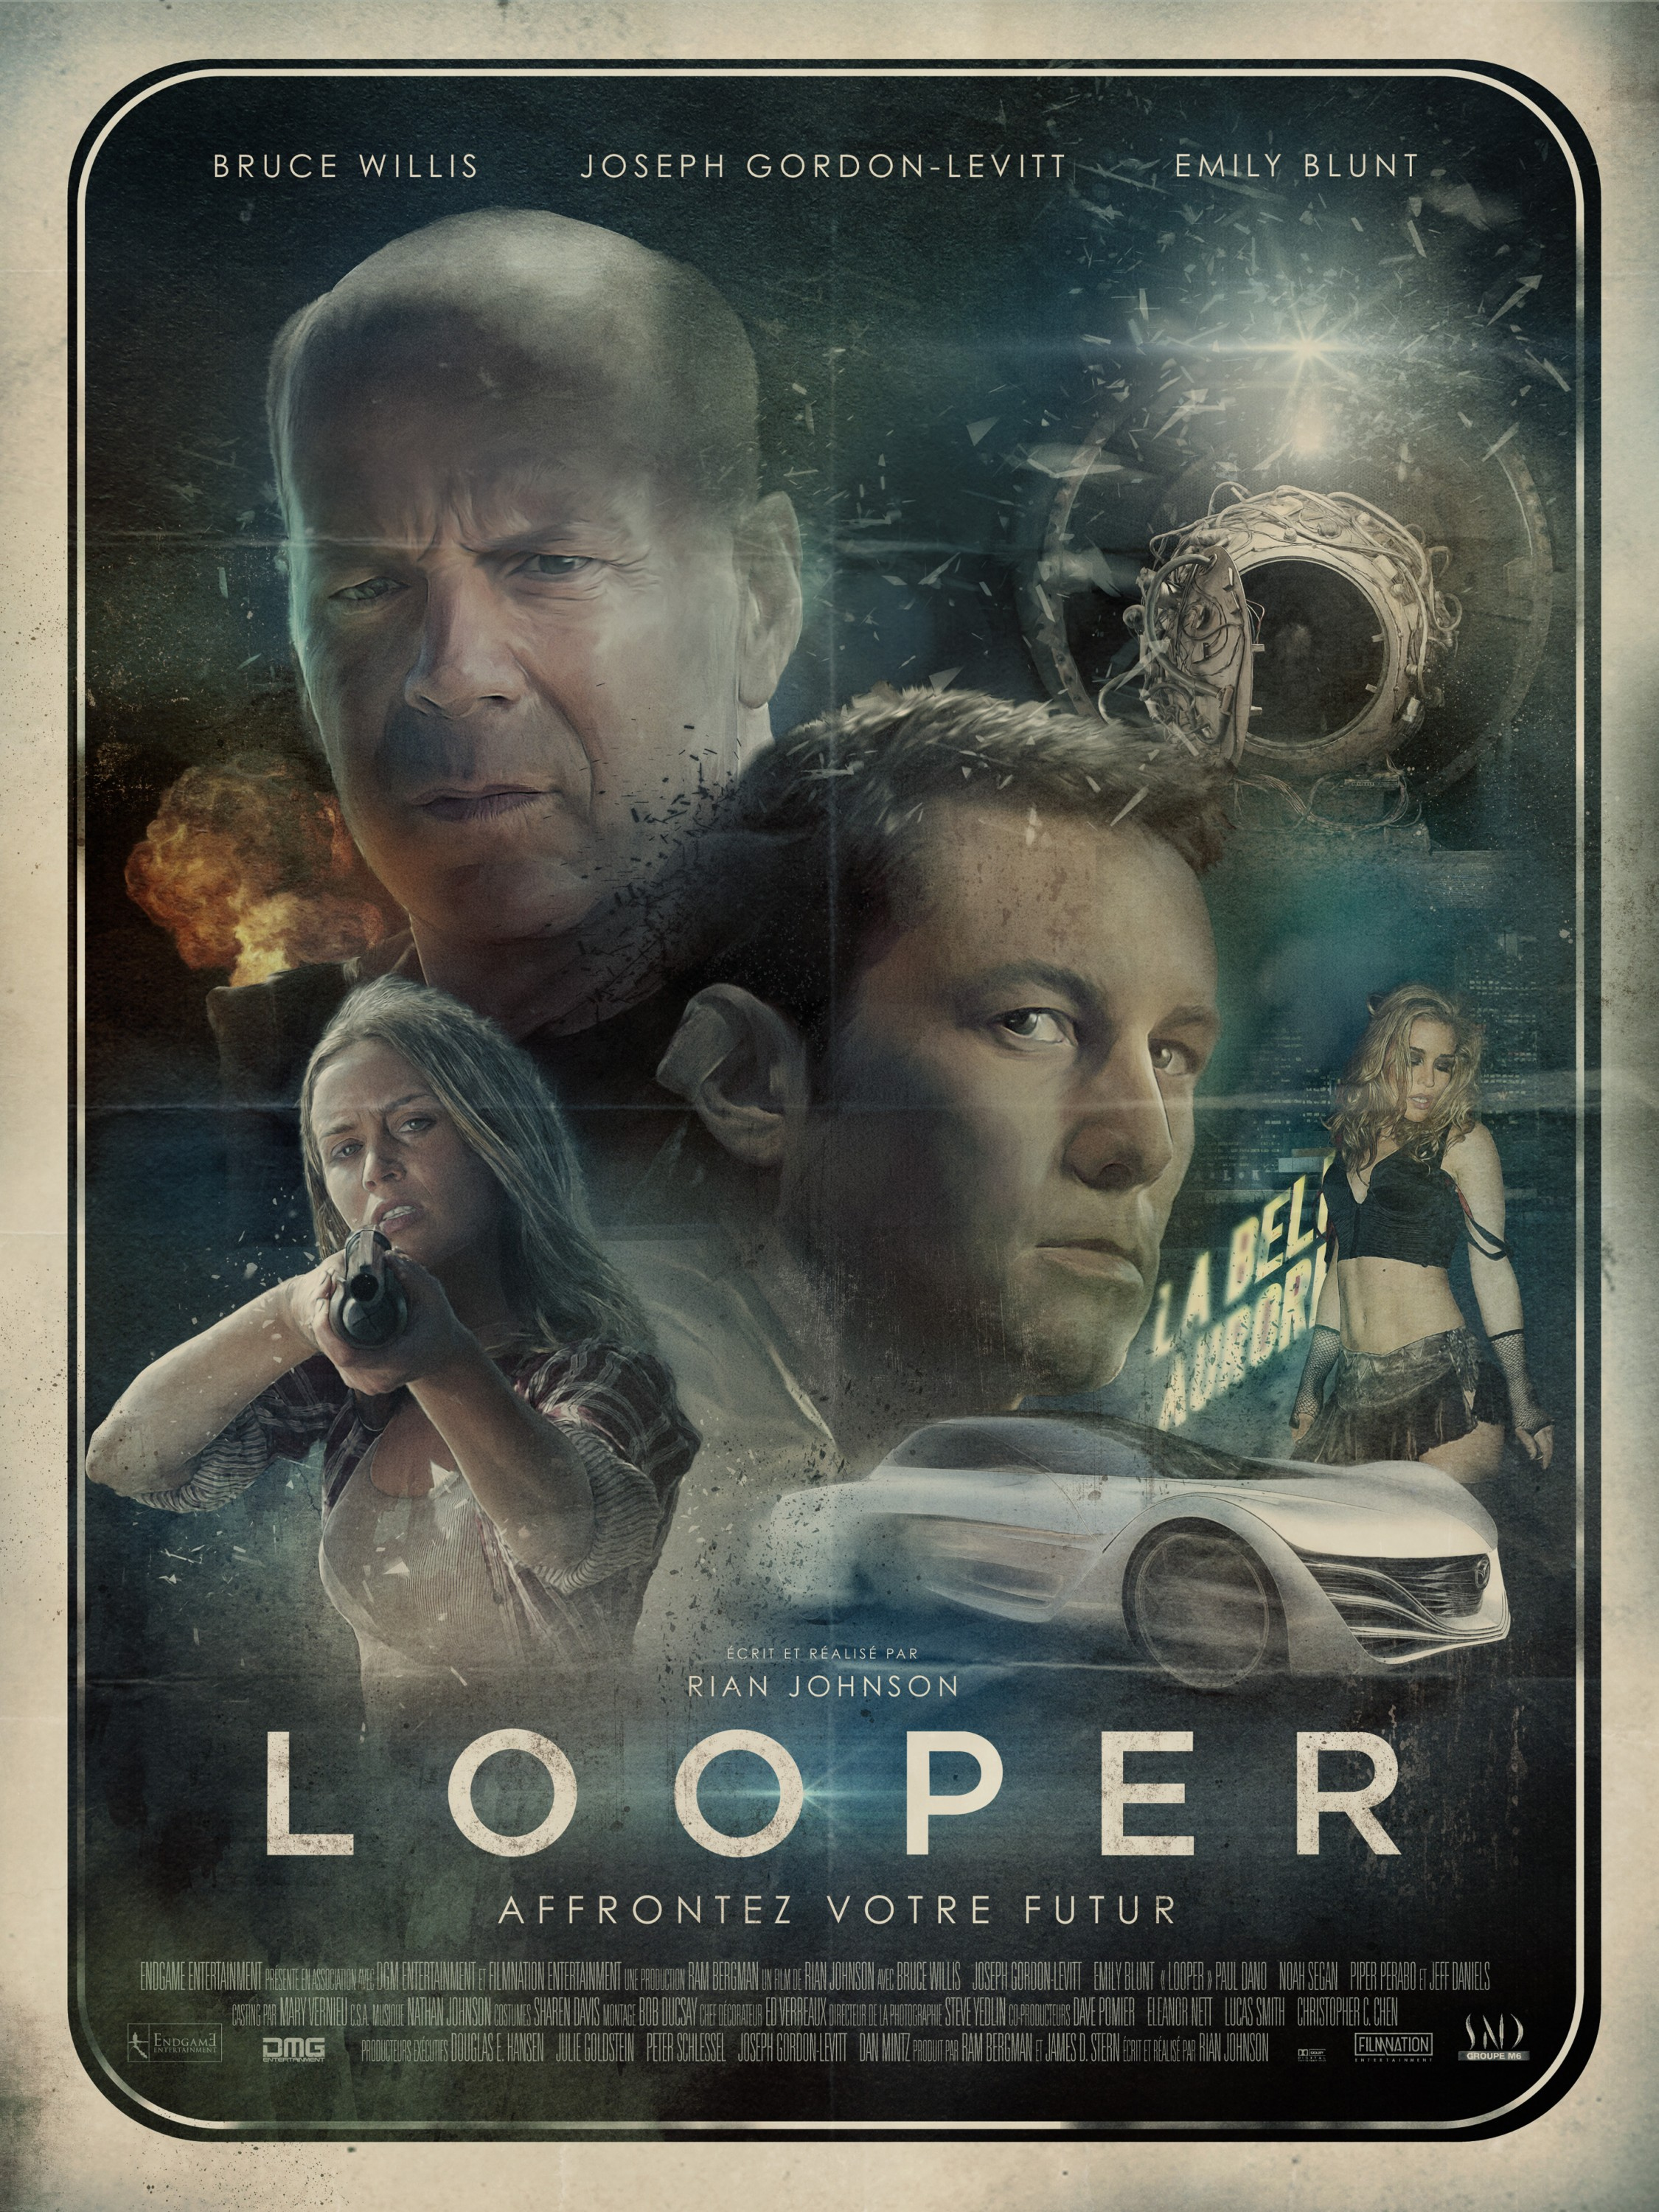 Looper 2012 Rian Johnson Commentary Track Timeline Infographic Filmbook